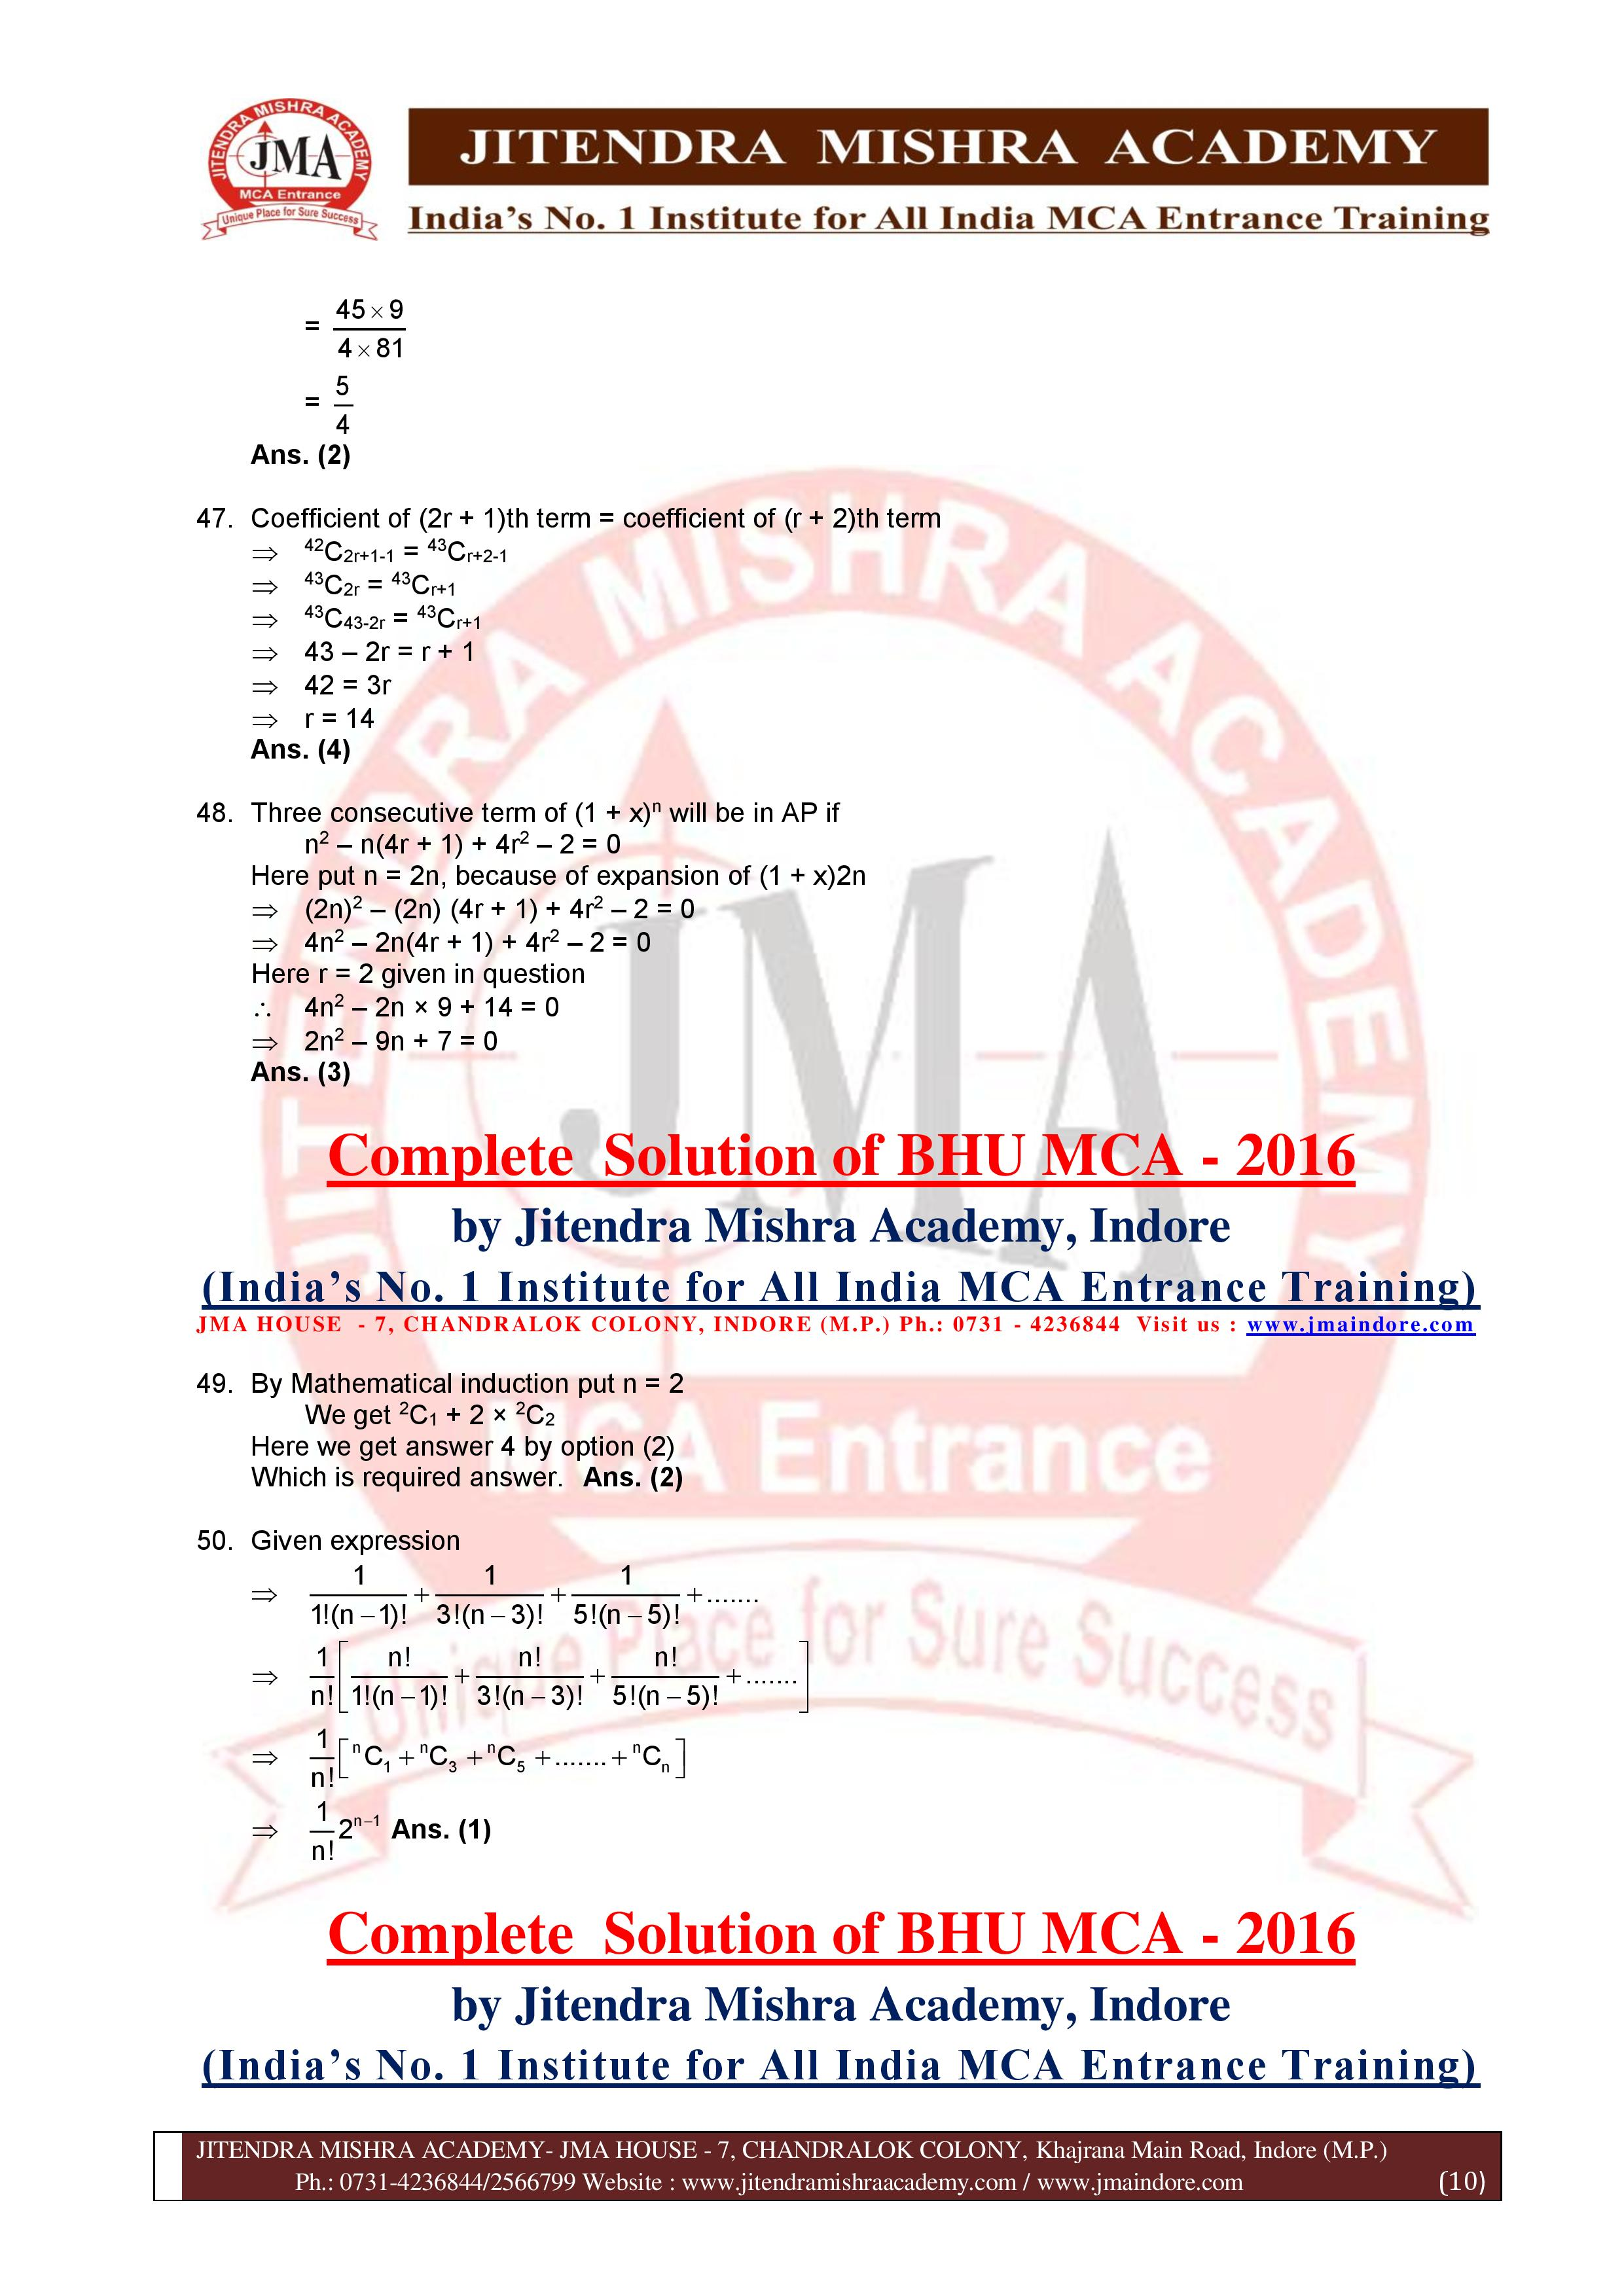 BHU 2016 SOLUTION (SET - 1)-page-010